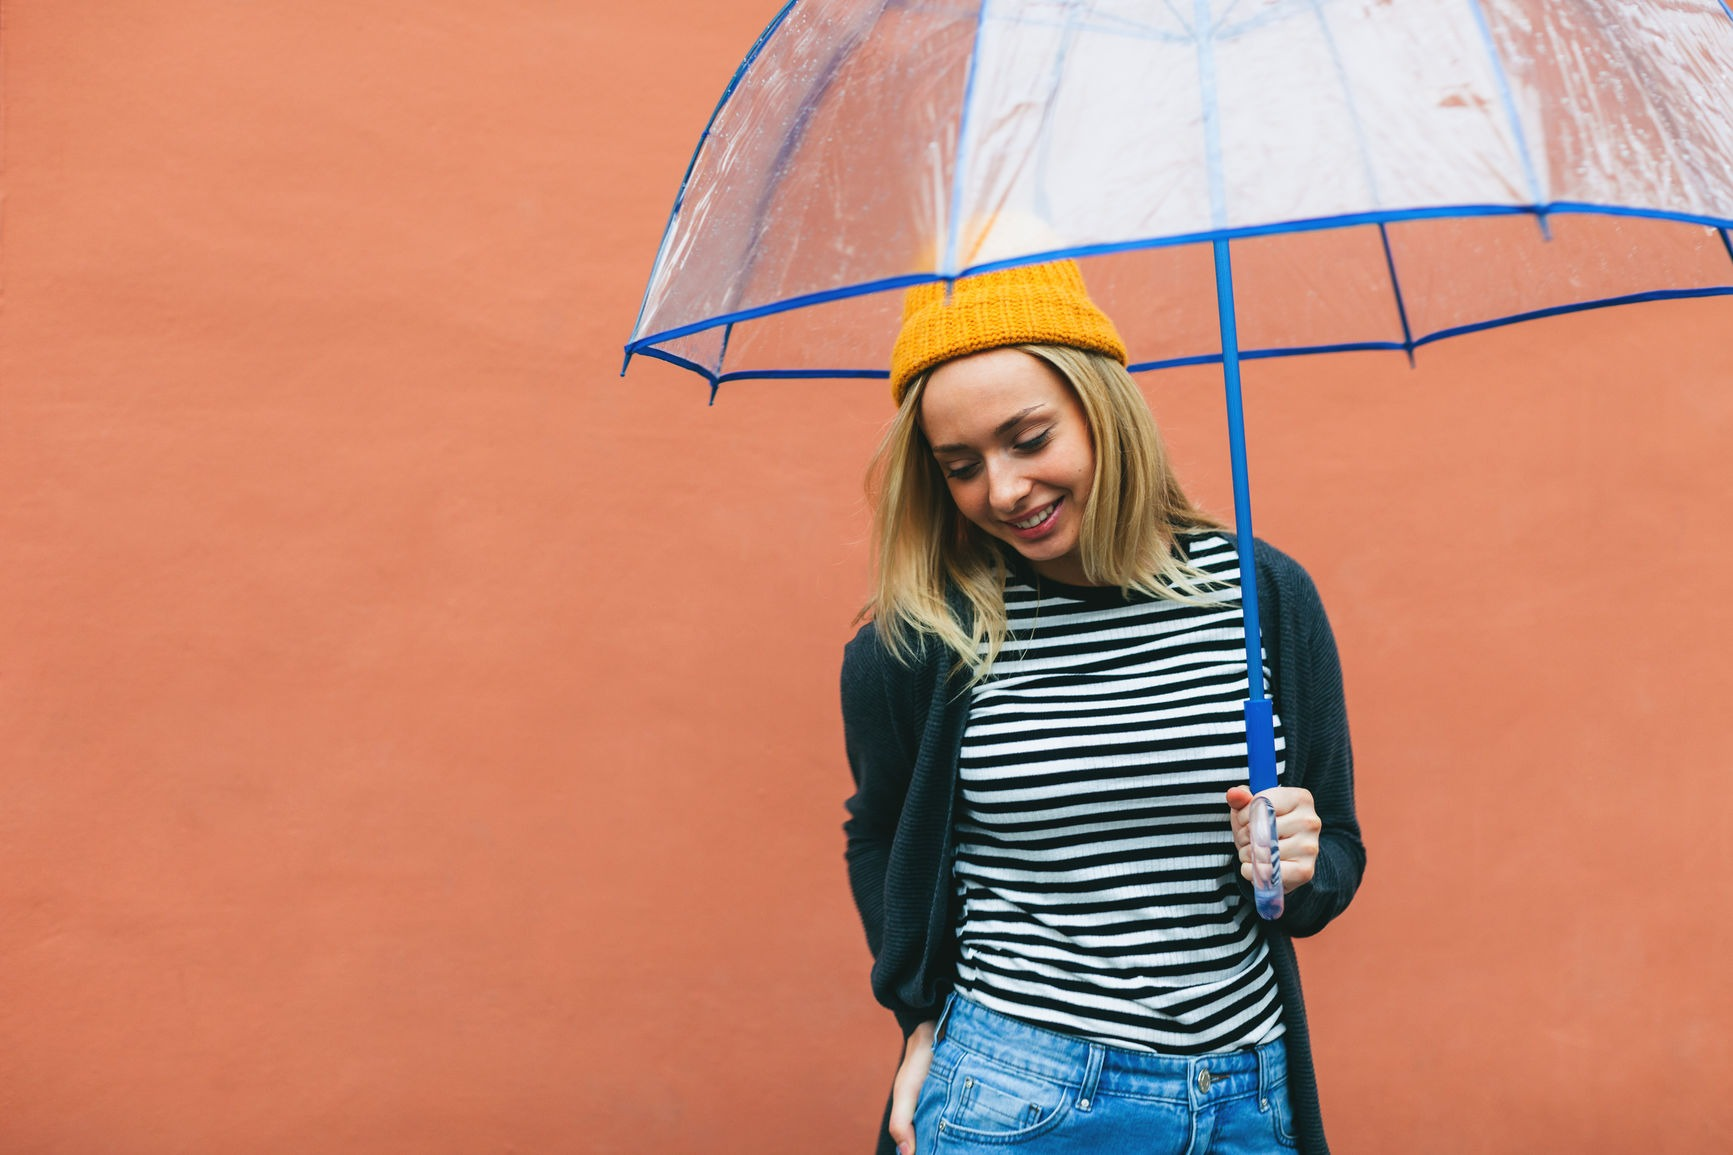 Blonde Woman Holding An Umbrella In Front Of An Orange Wall.